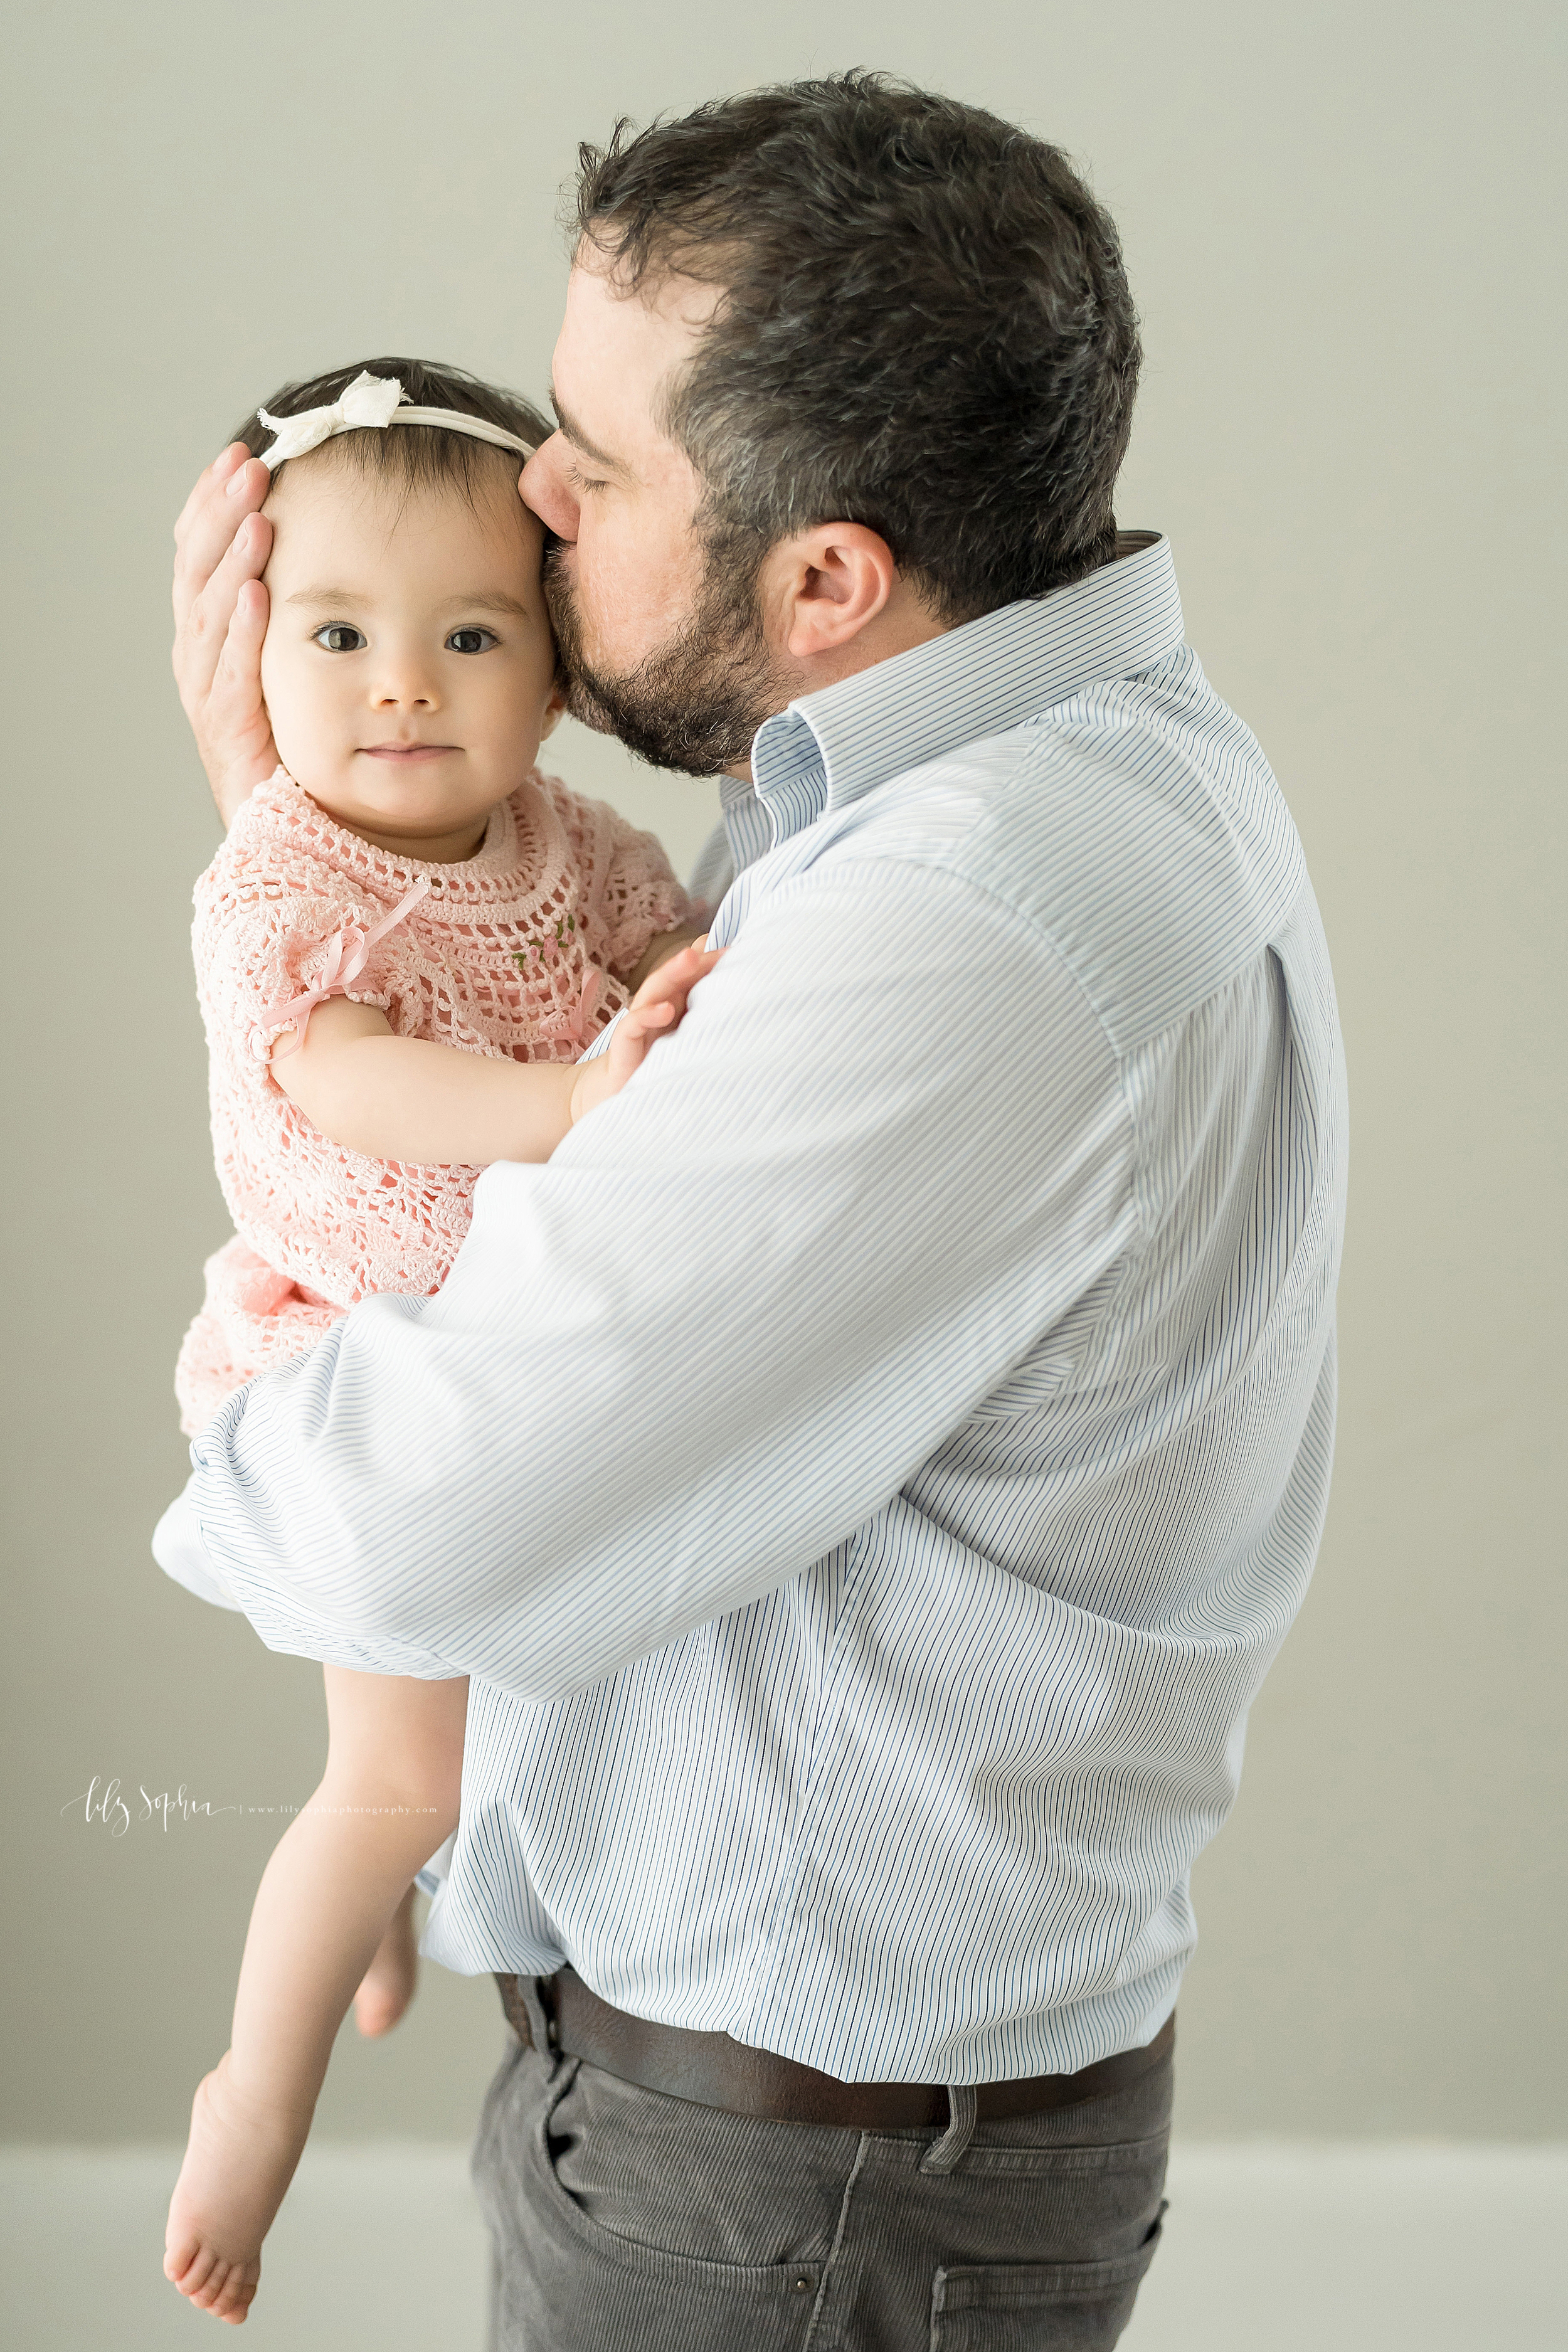 Photograph of bearded dad holding his one year old daughter while he is standing. Dad is wearing gray jeans with a black belt and a white and gray long-sleeved pin-striped shirt.  His daughter is wearing a pastel pink bowed headband in her hair and a pastel pink crocheted dress. Dad's right hand is cradling his daughter's head as he kisses her head.  Dad's left hand holds his daughter as her tender legs and barefoot feet dangle.